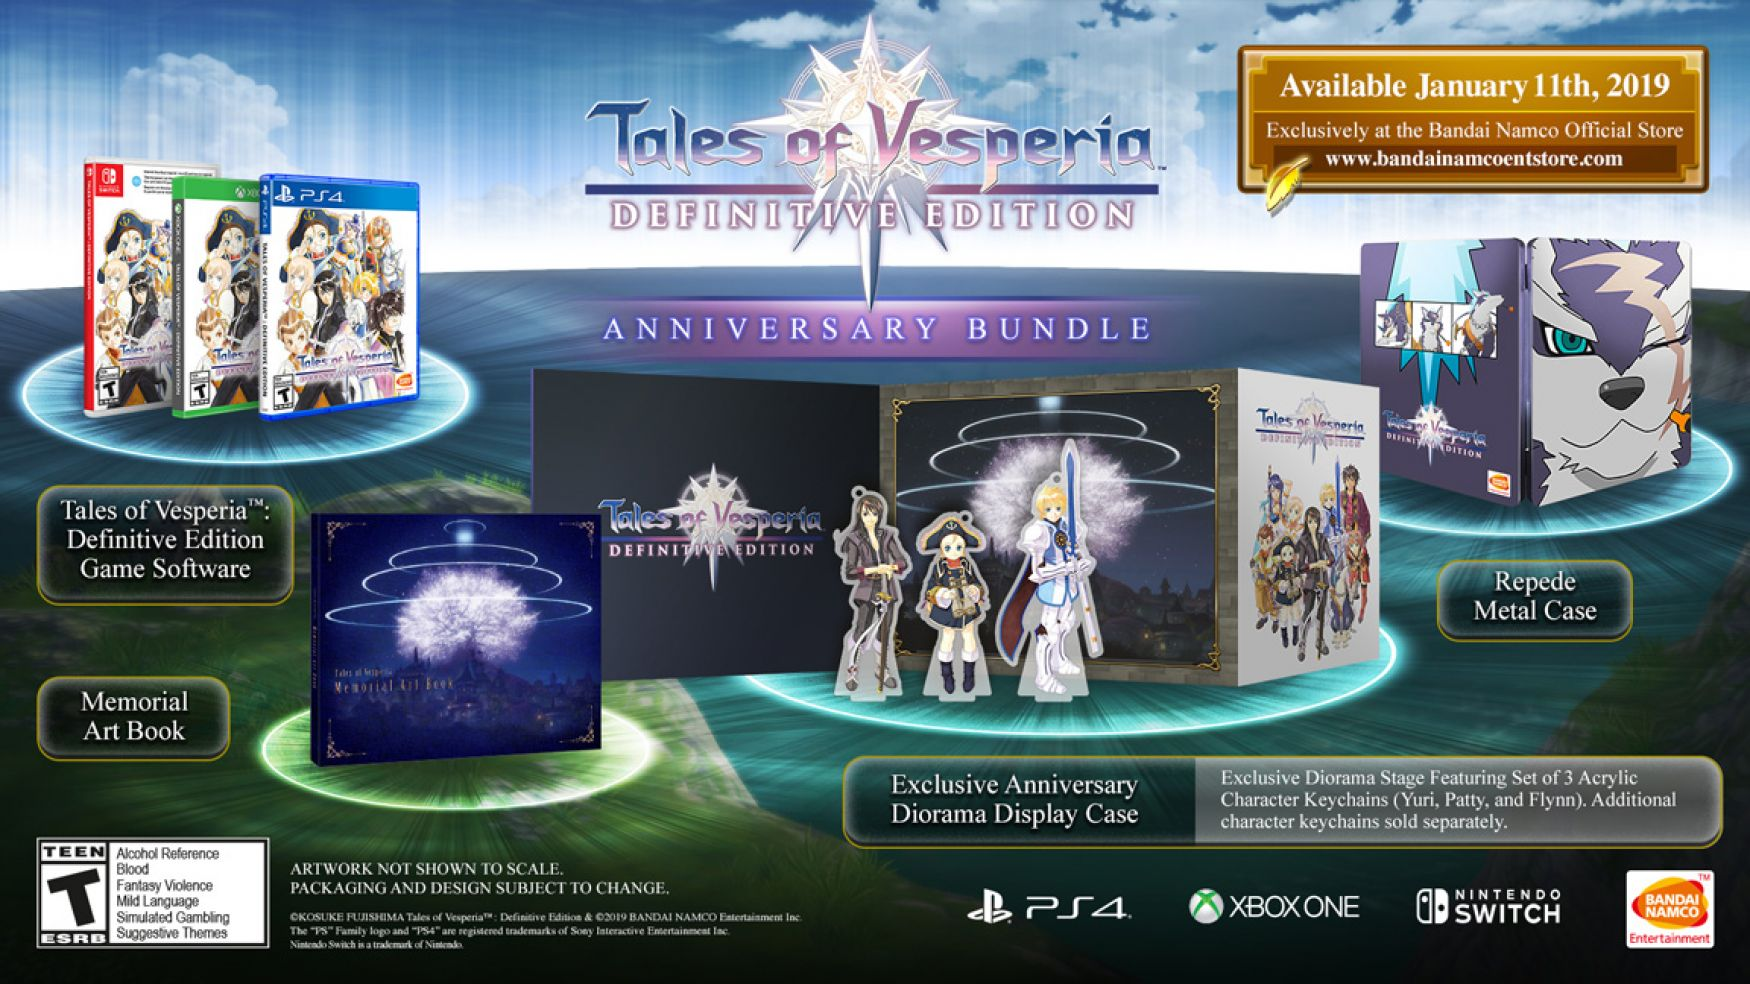 UPDATE]Tales of Vesperia Definitive Edition Nintendo Switch May